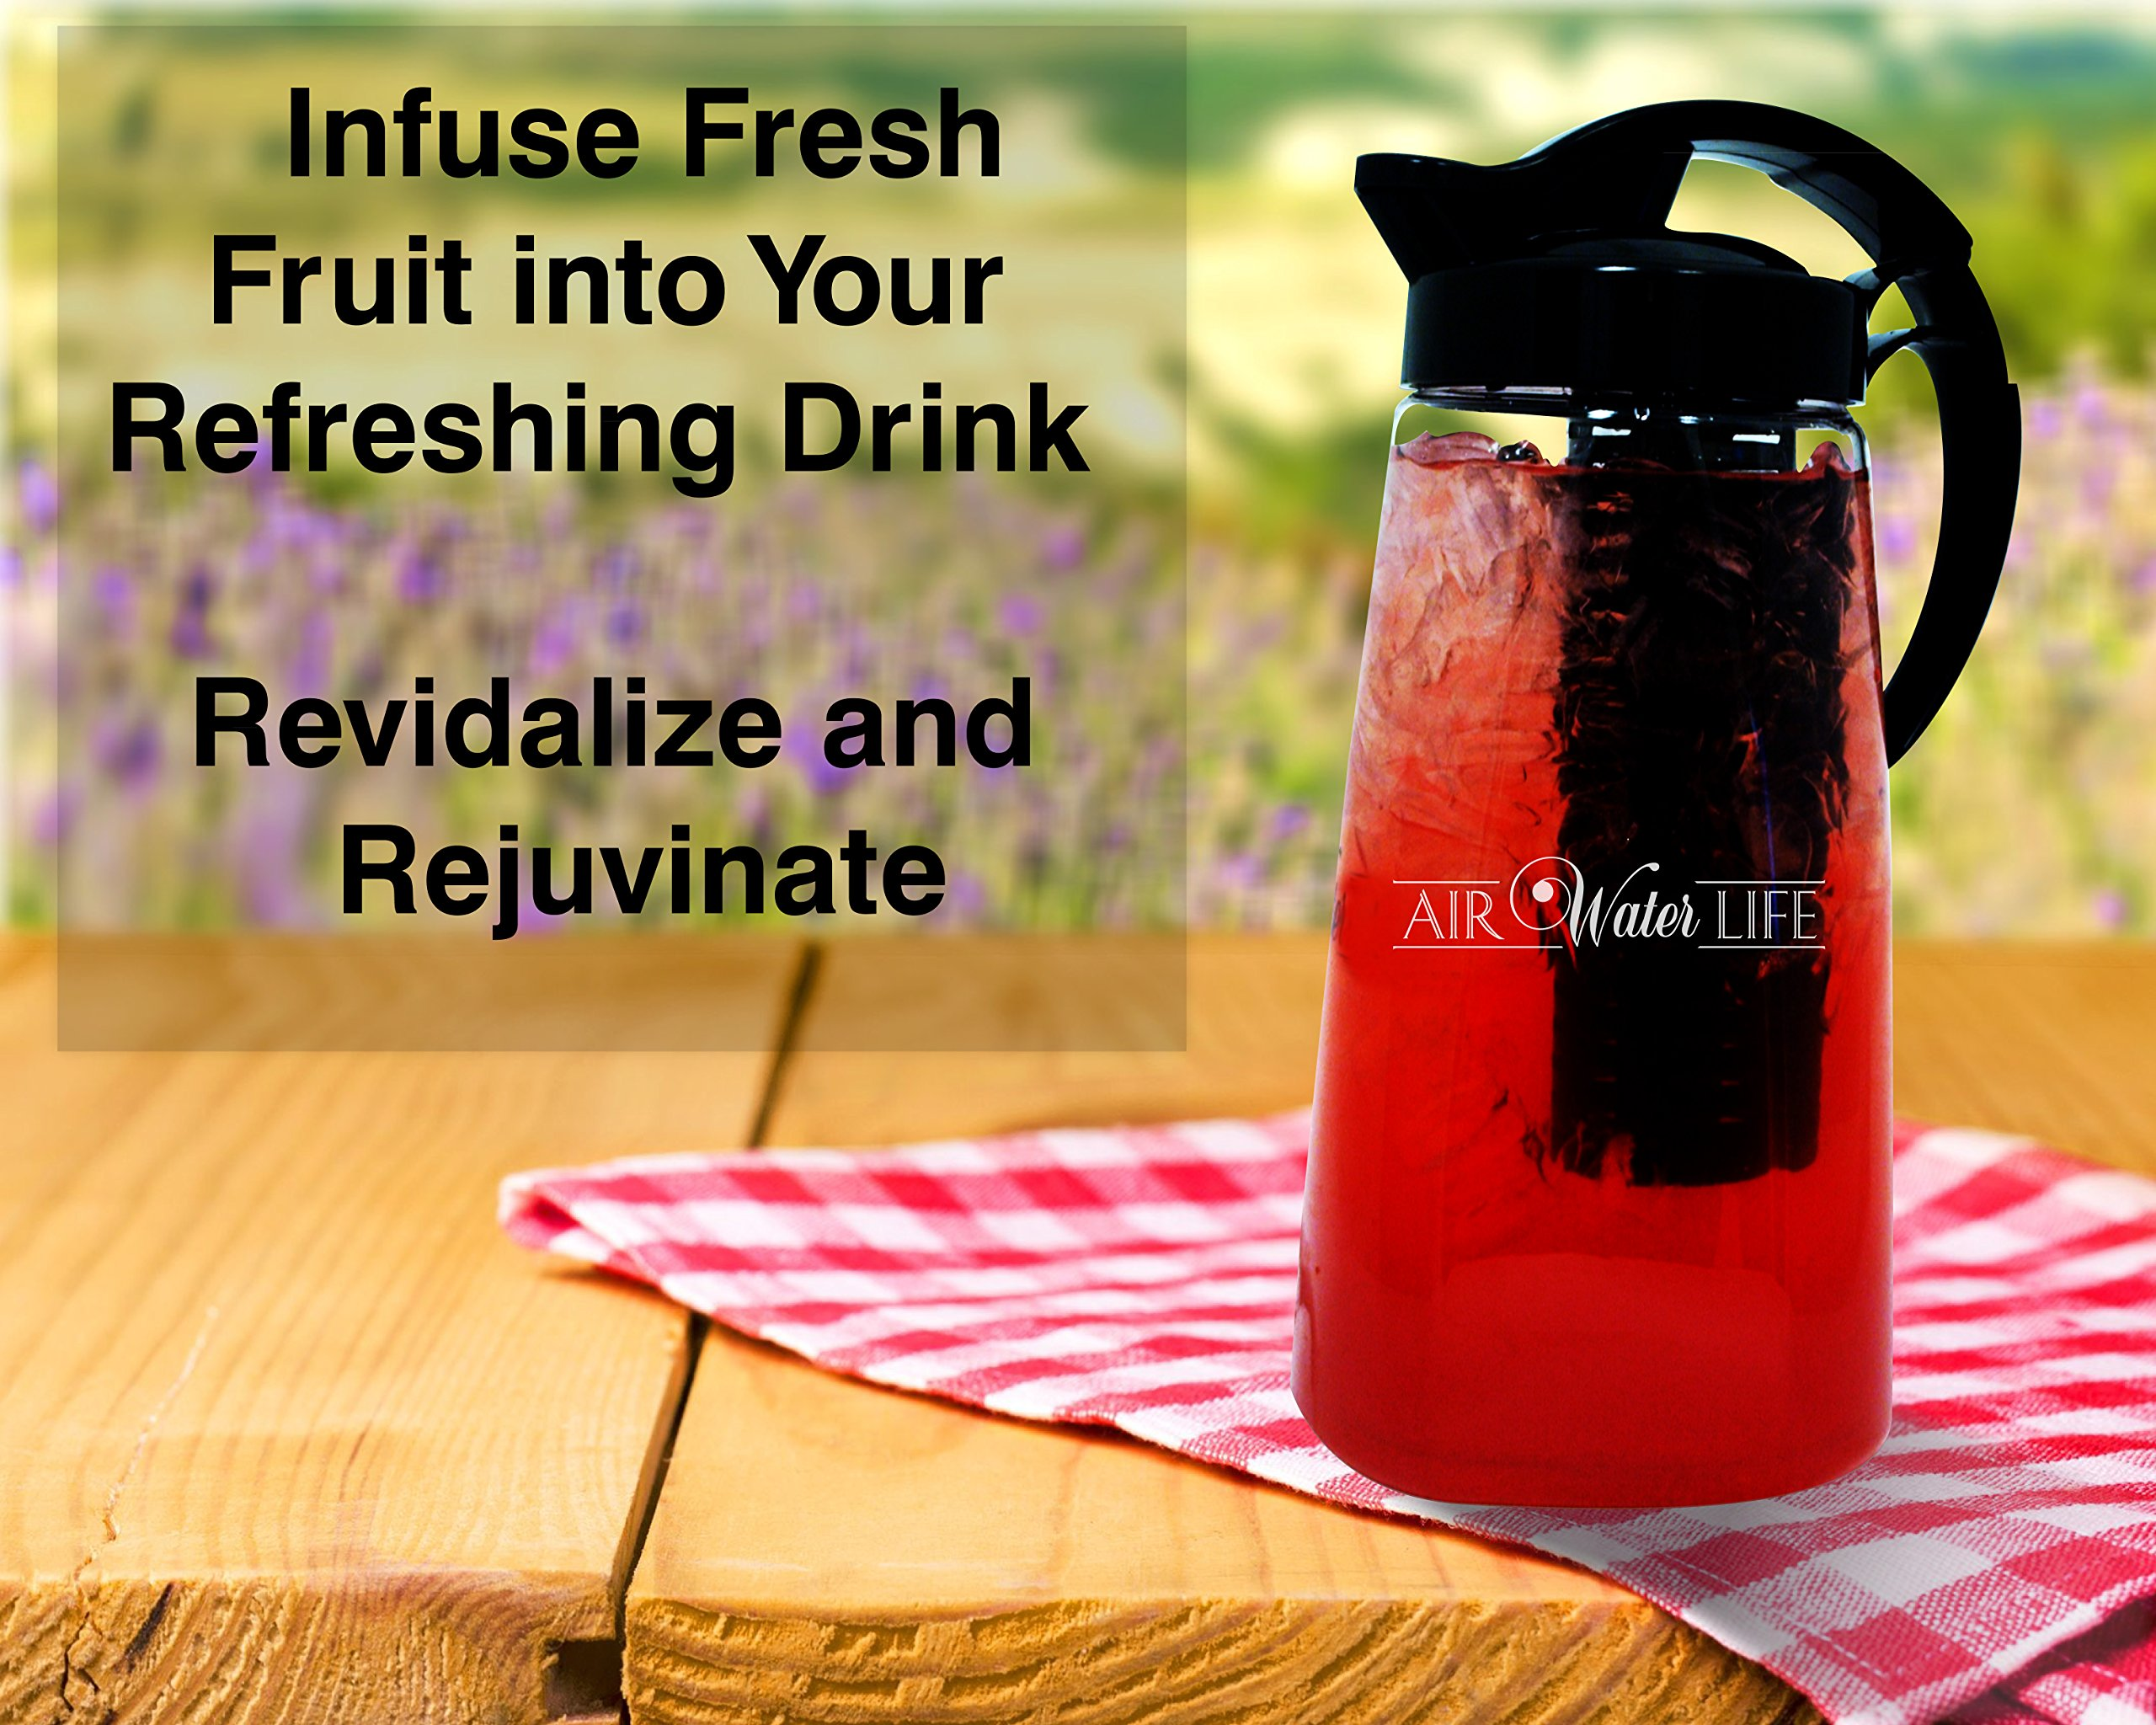 Air Water Life Fruit &Tea Infusion Pitcher | Infuse Fruit, Herbs, Spices And Tea, Make Perfect Detoxing & Healthy Beverages, Dish Washer Safe, Odor & Stain Free, Best Gift for Health-Conscious People